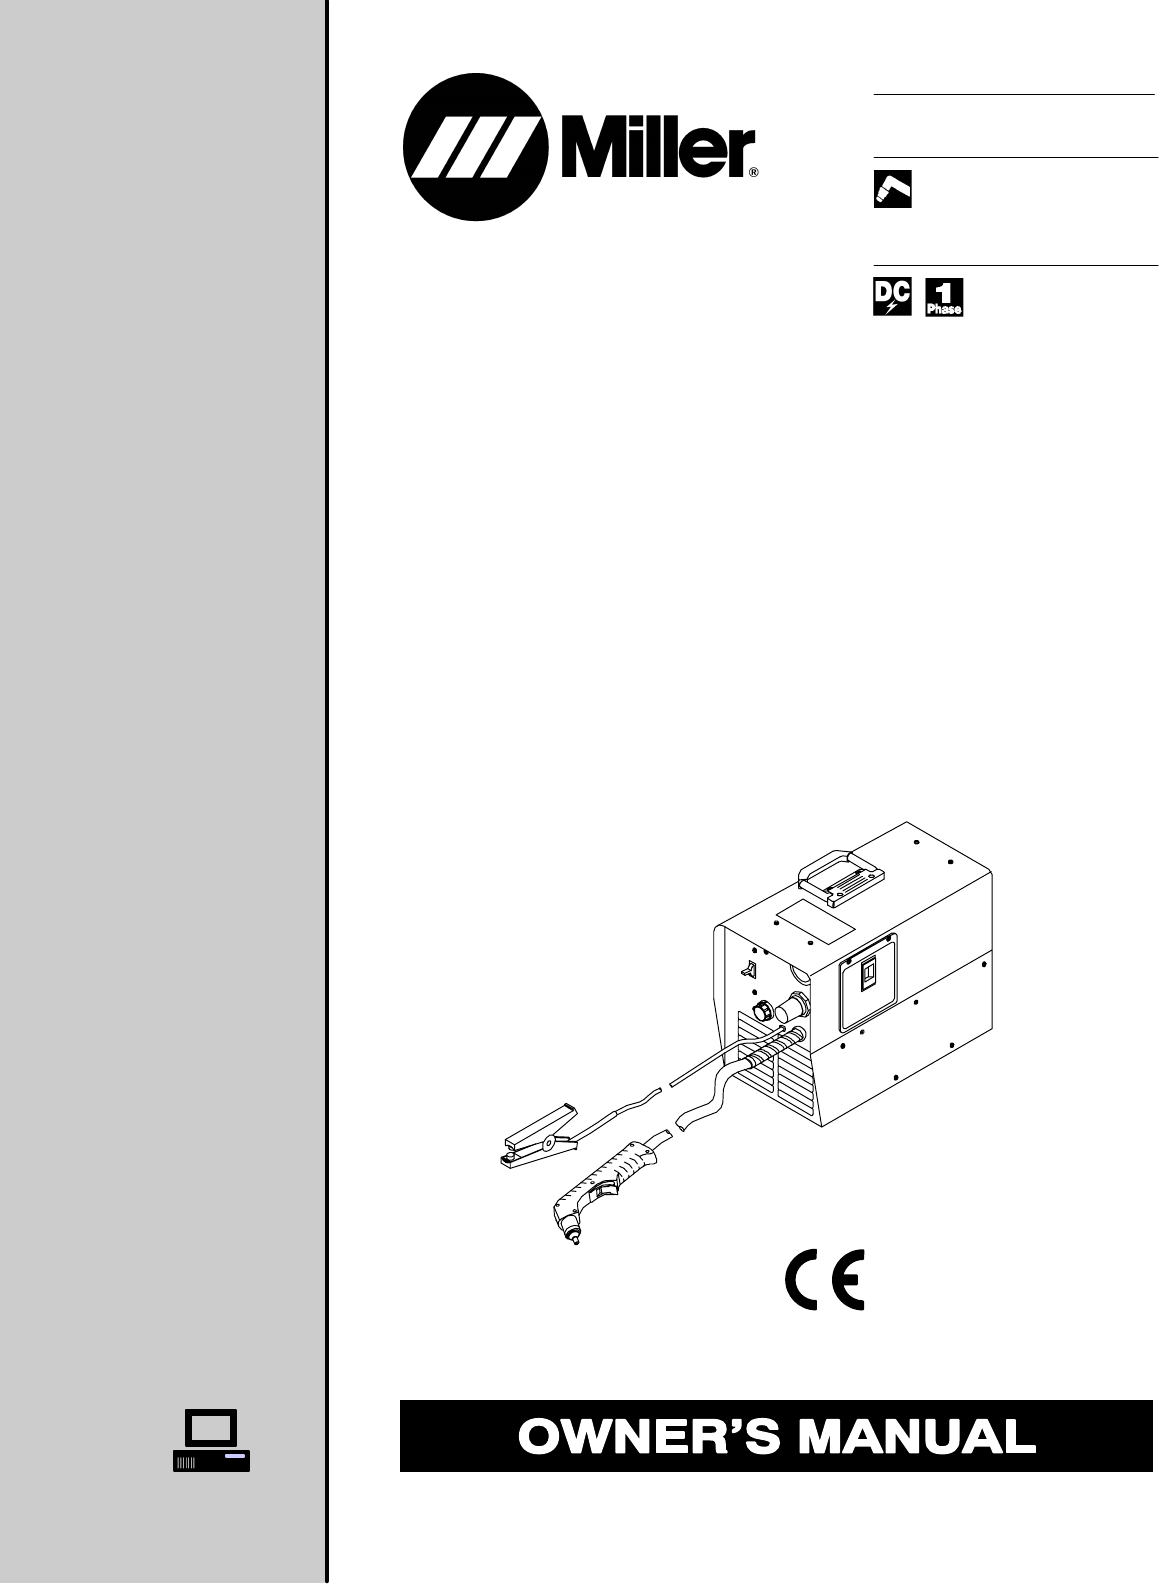 Miller Electric Welder 375 User Guide